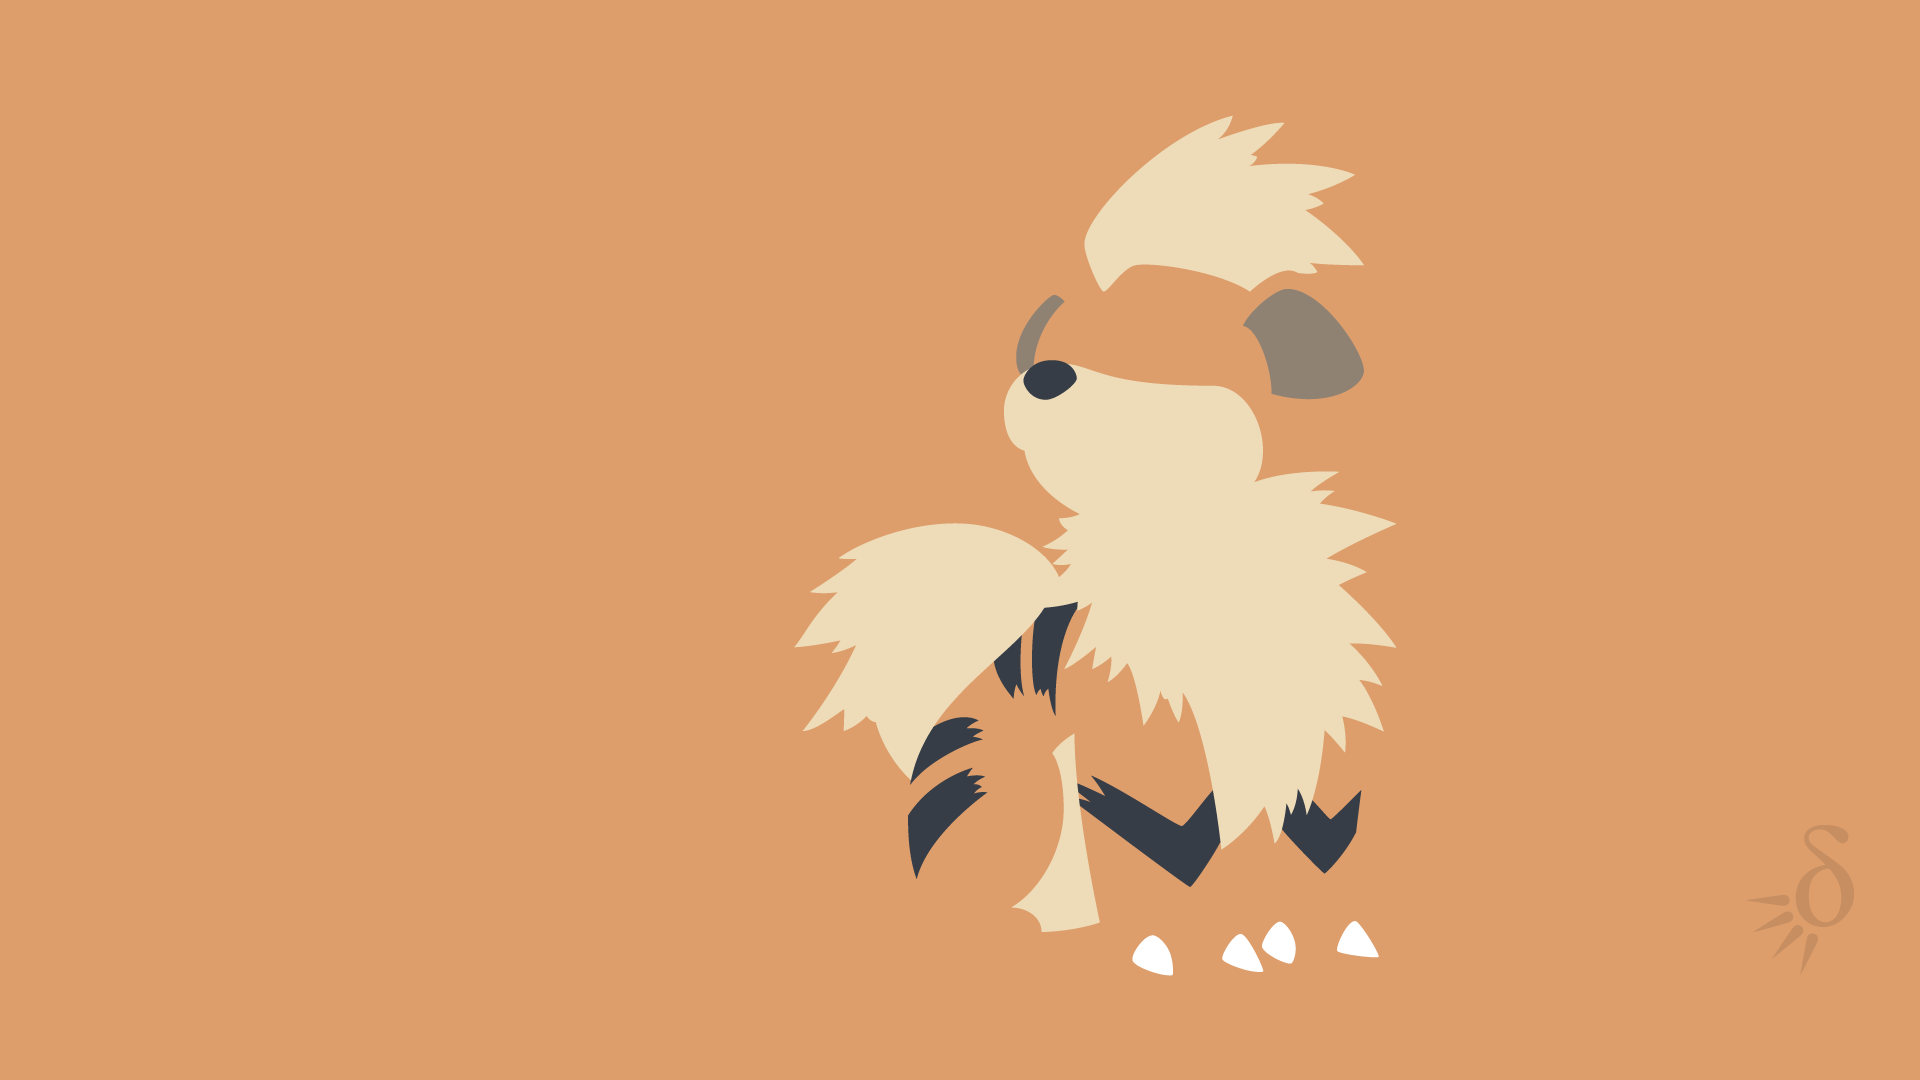 growlithe wallpaper - photo #29